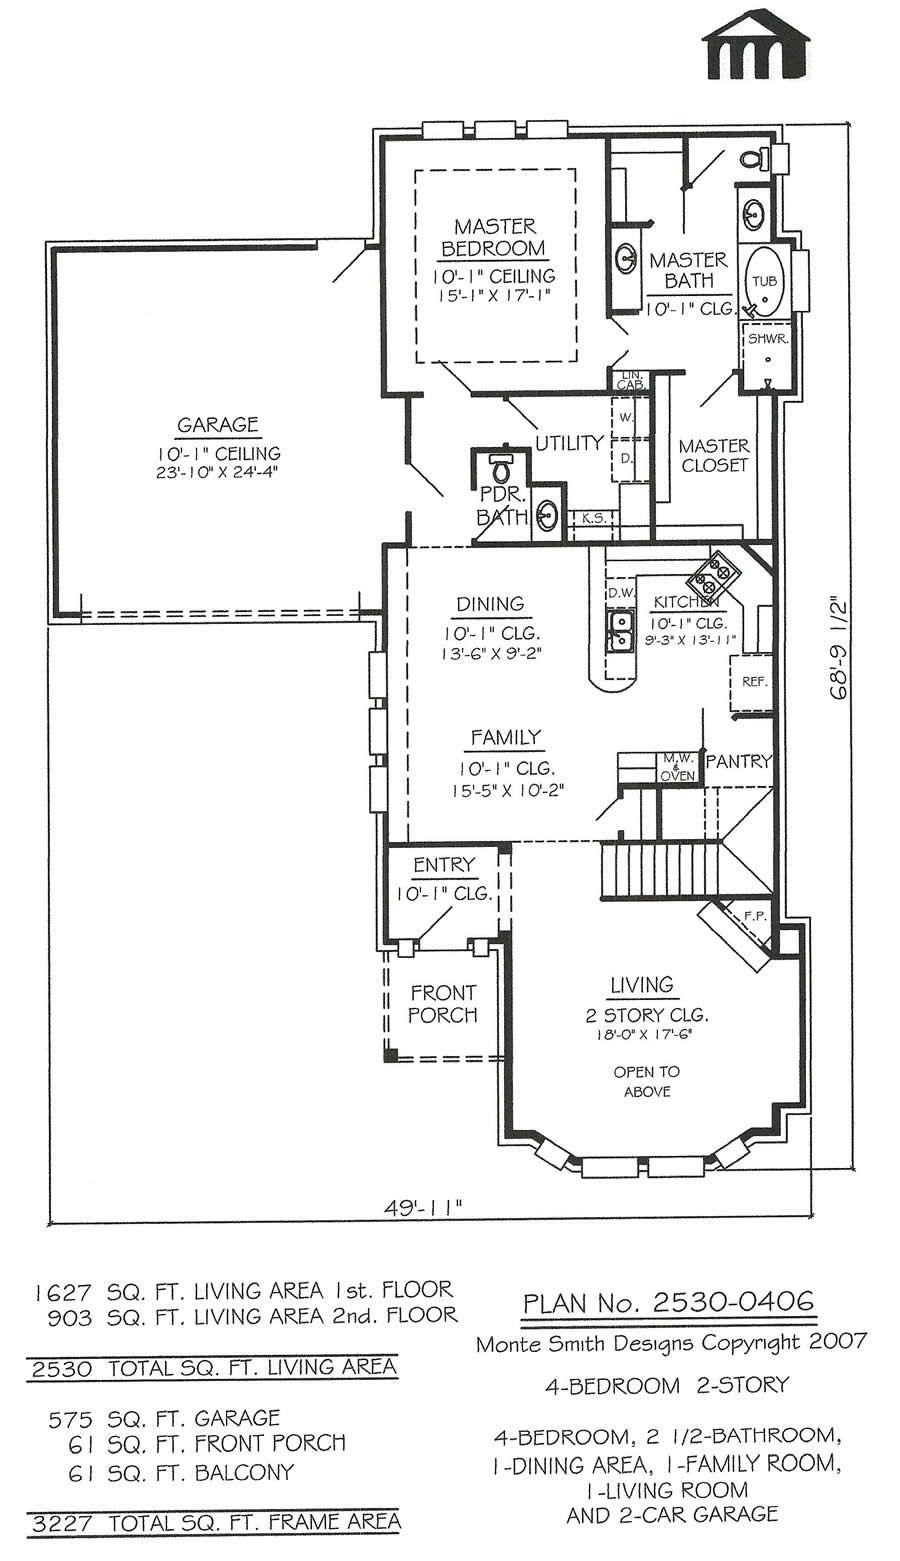 hight resolution of 2 story 4 bedroom 2 1 2 bathroom 1 dining room 1 family room 1 living room and 2 car garage 2530 sq living area house plan offices in texas and